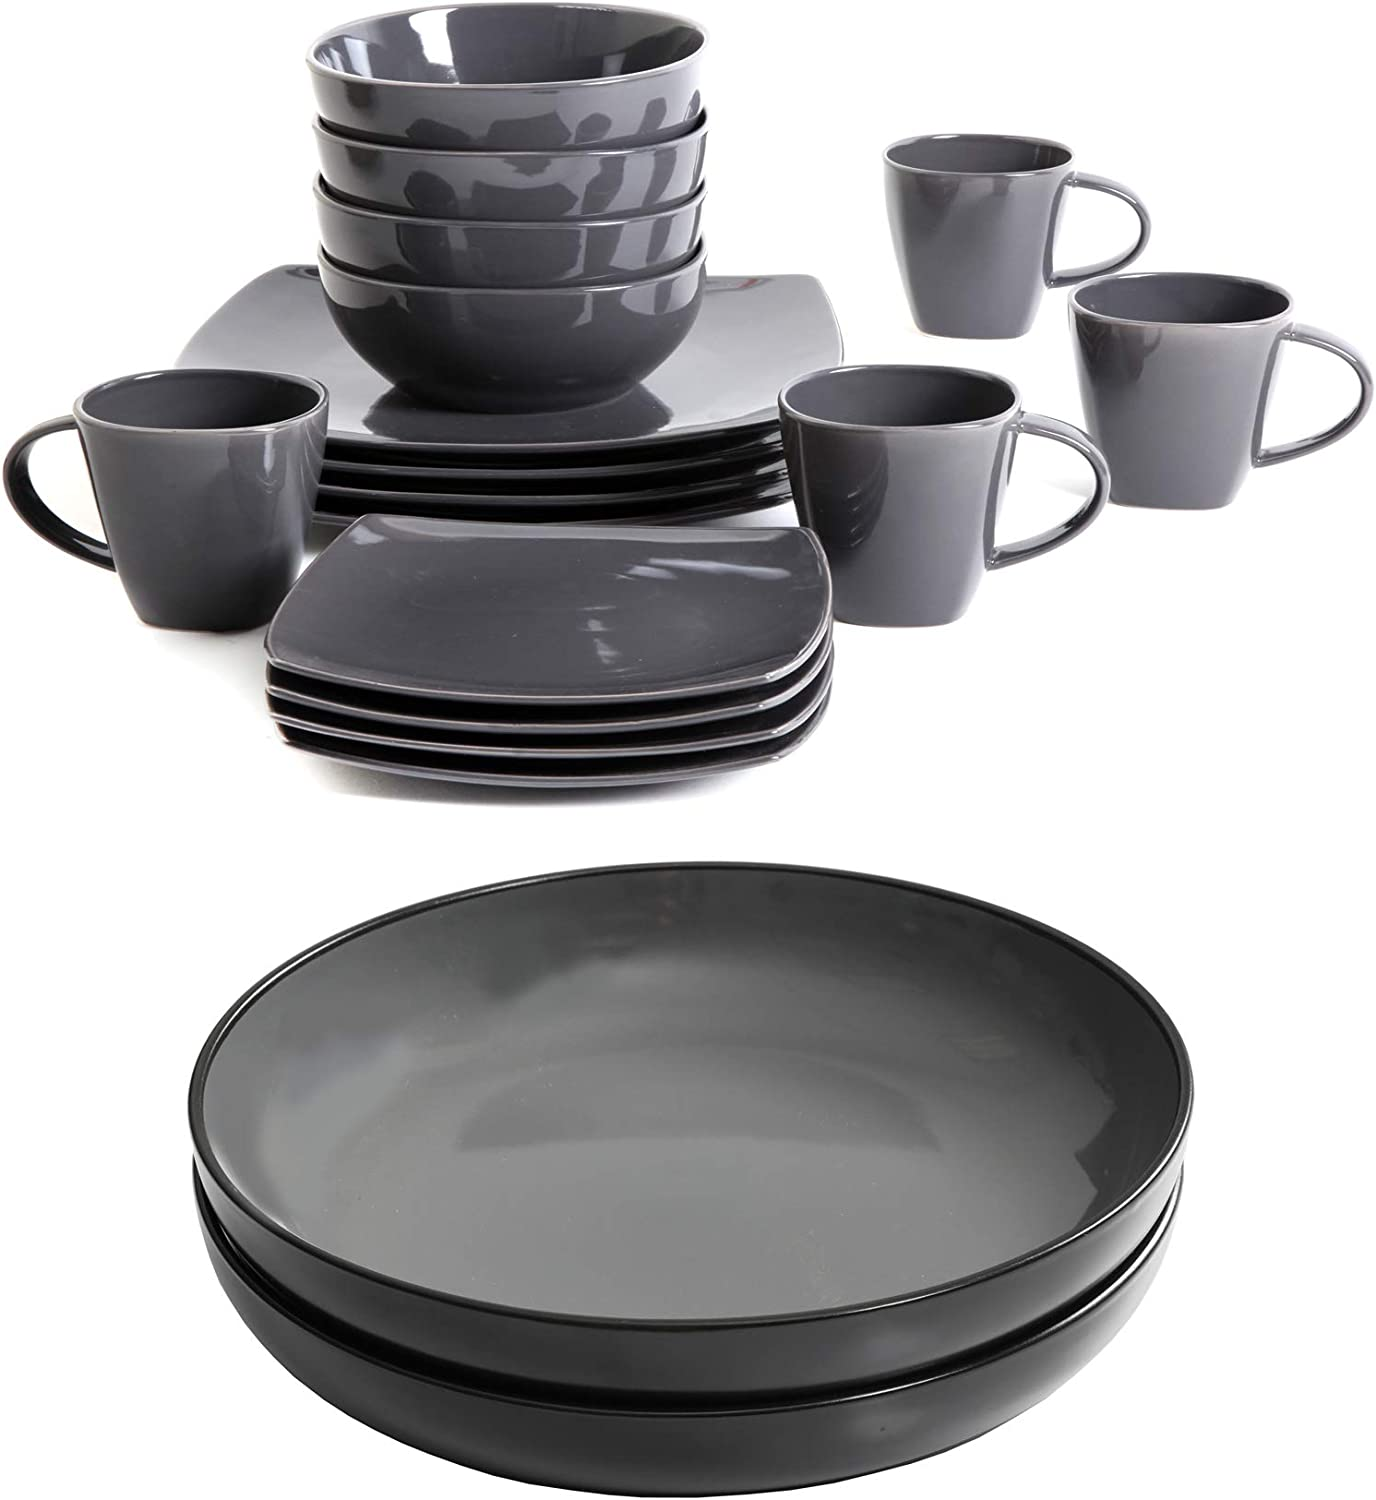 A.T. Products Corp. Soho Lounge 16 Piece Square Dinnerware Set, Gray bundle with Soho Lounge 2 Piece Dinner Bowls Set, Gray